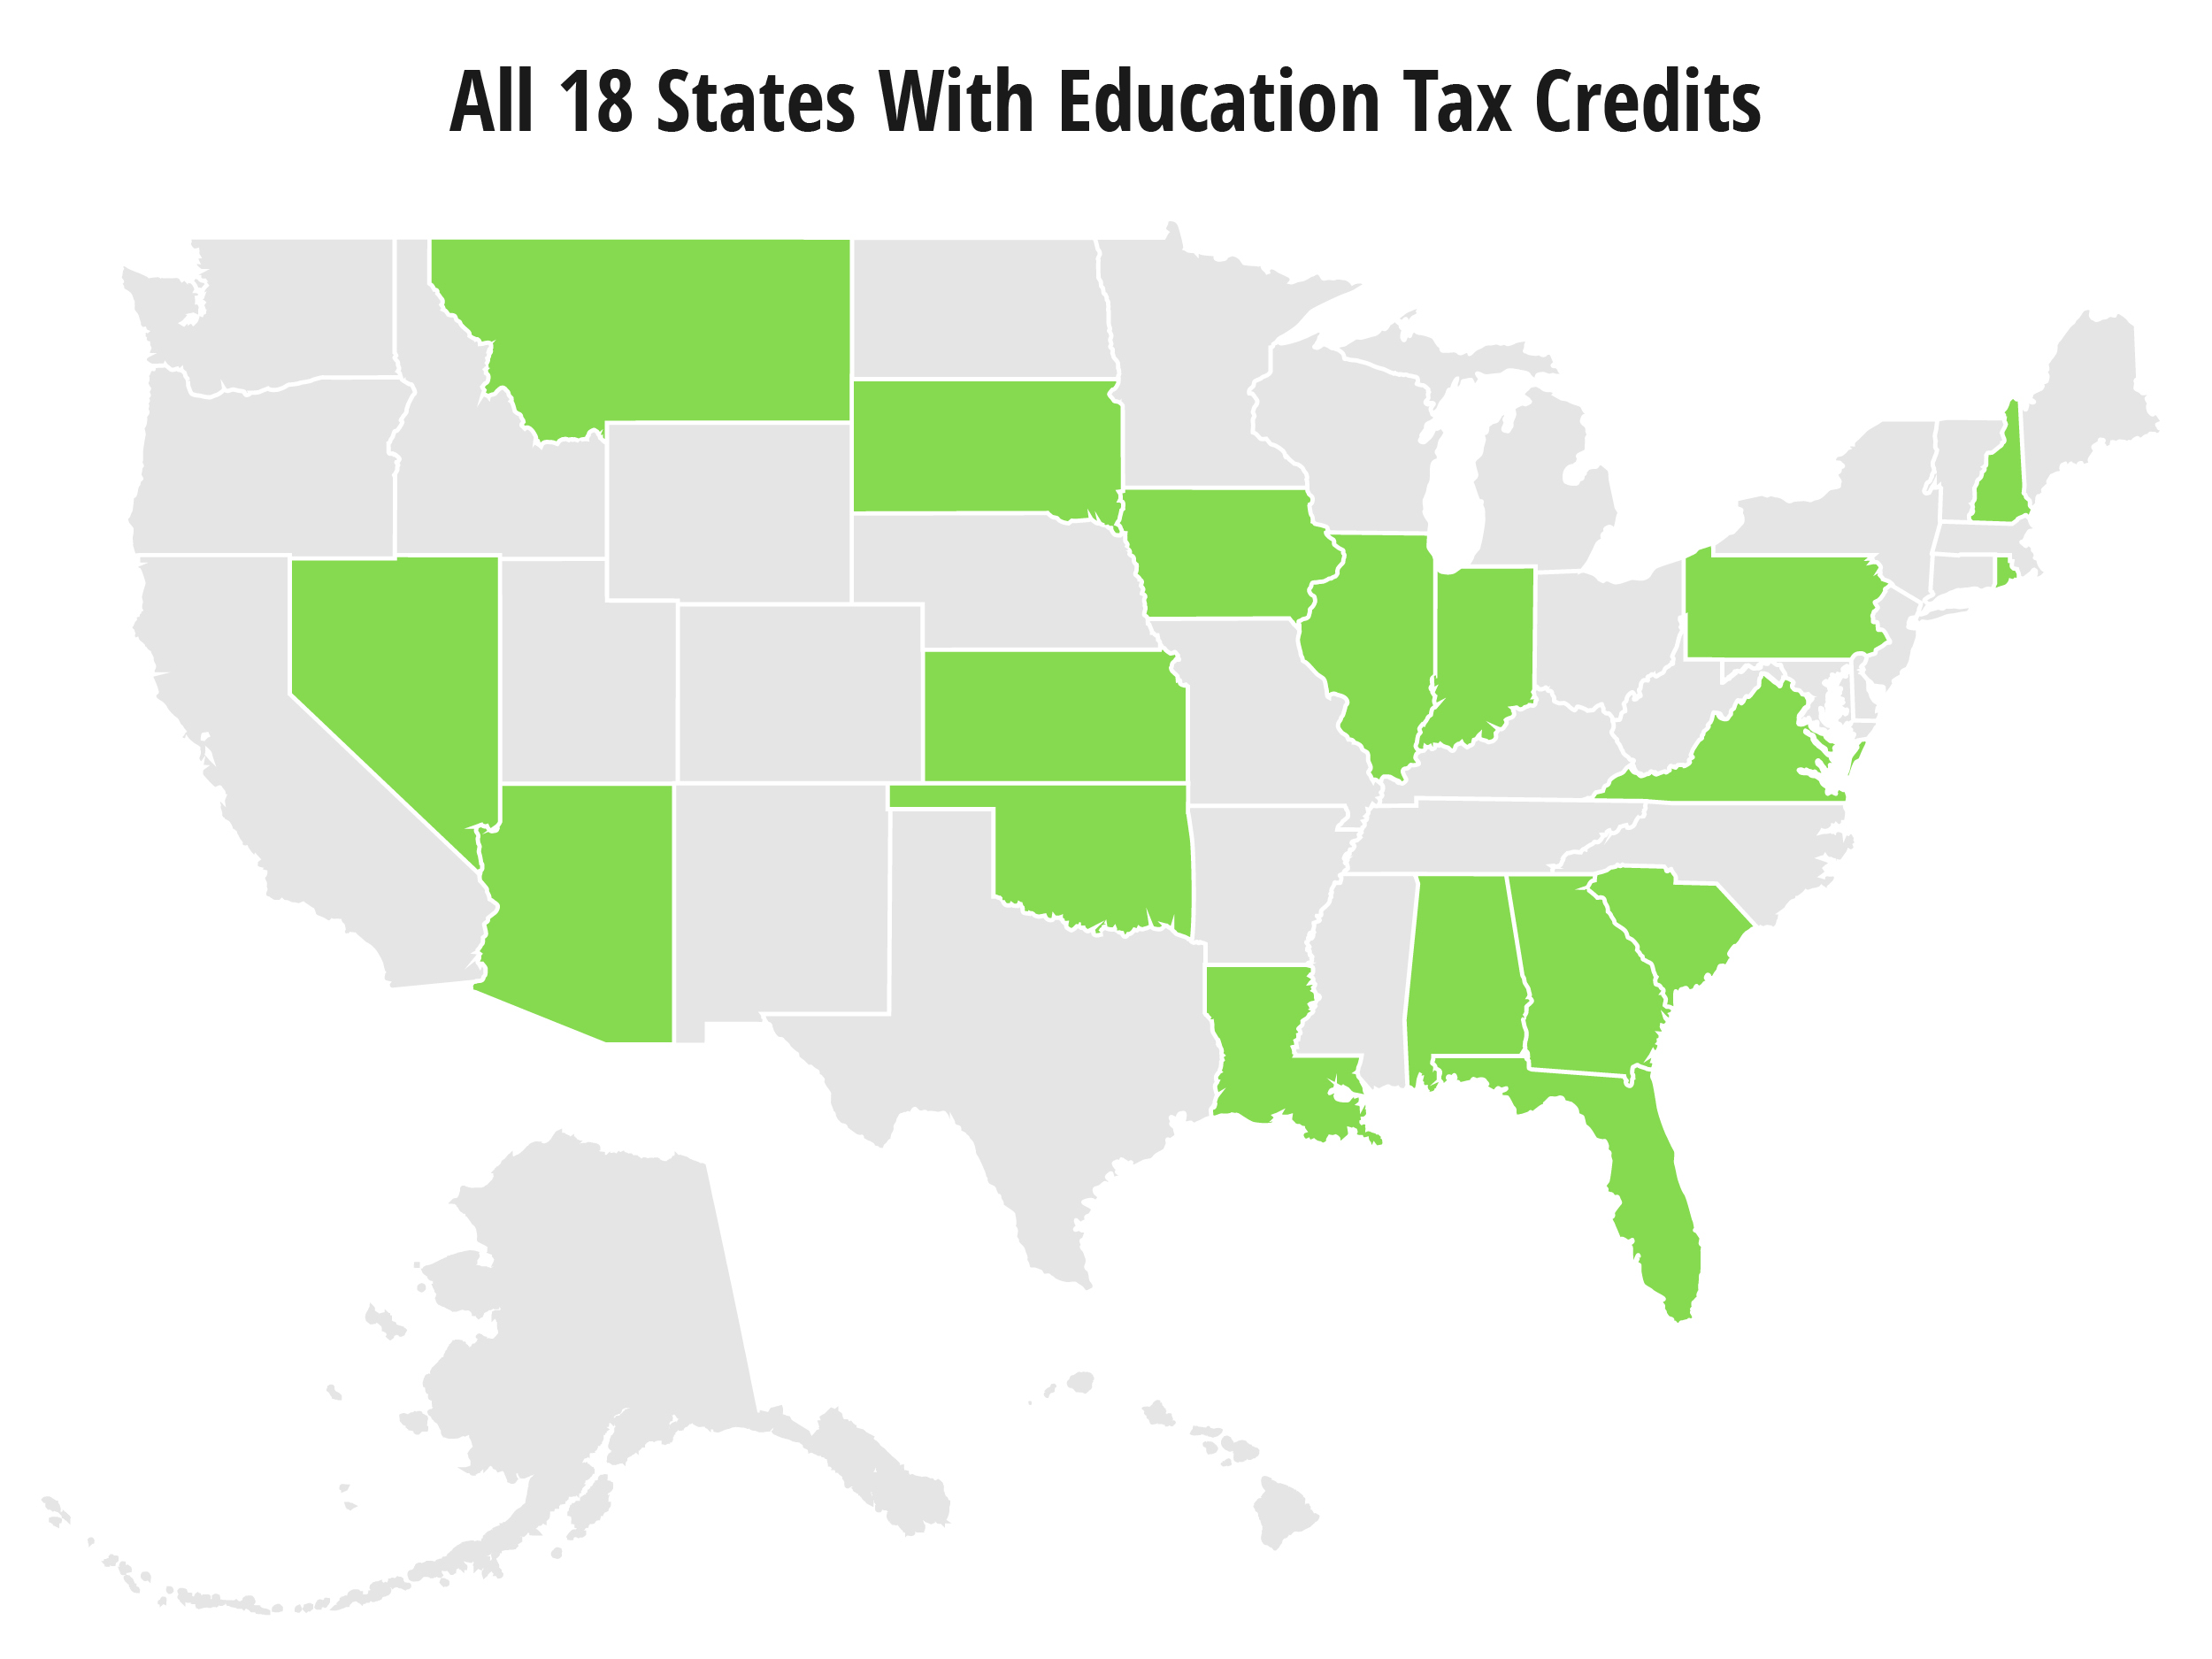 States with Tax Credits